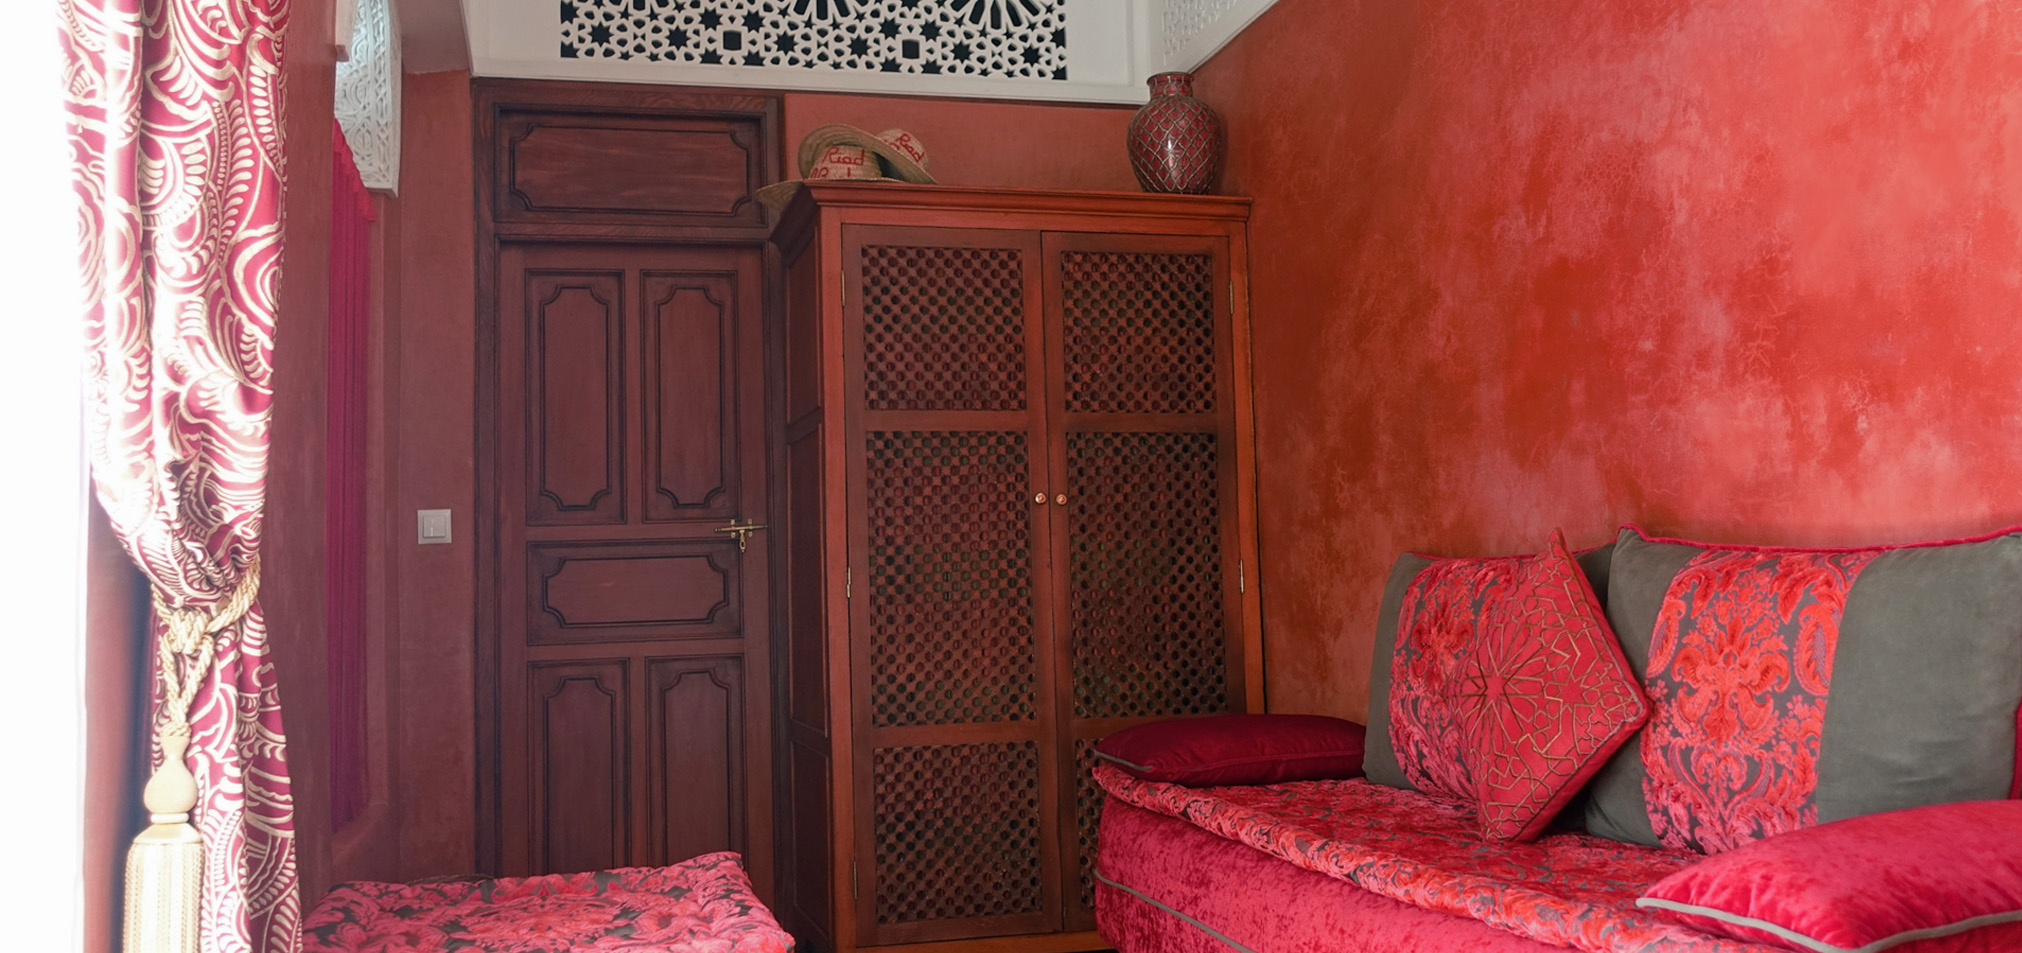 2. Ahmar Sitting Area